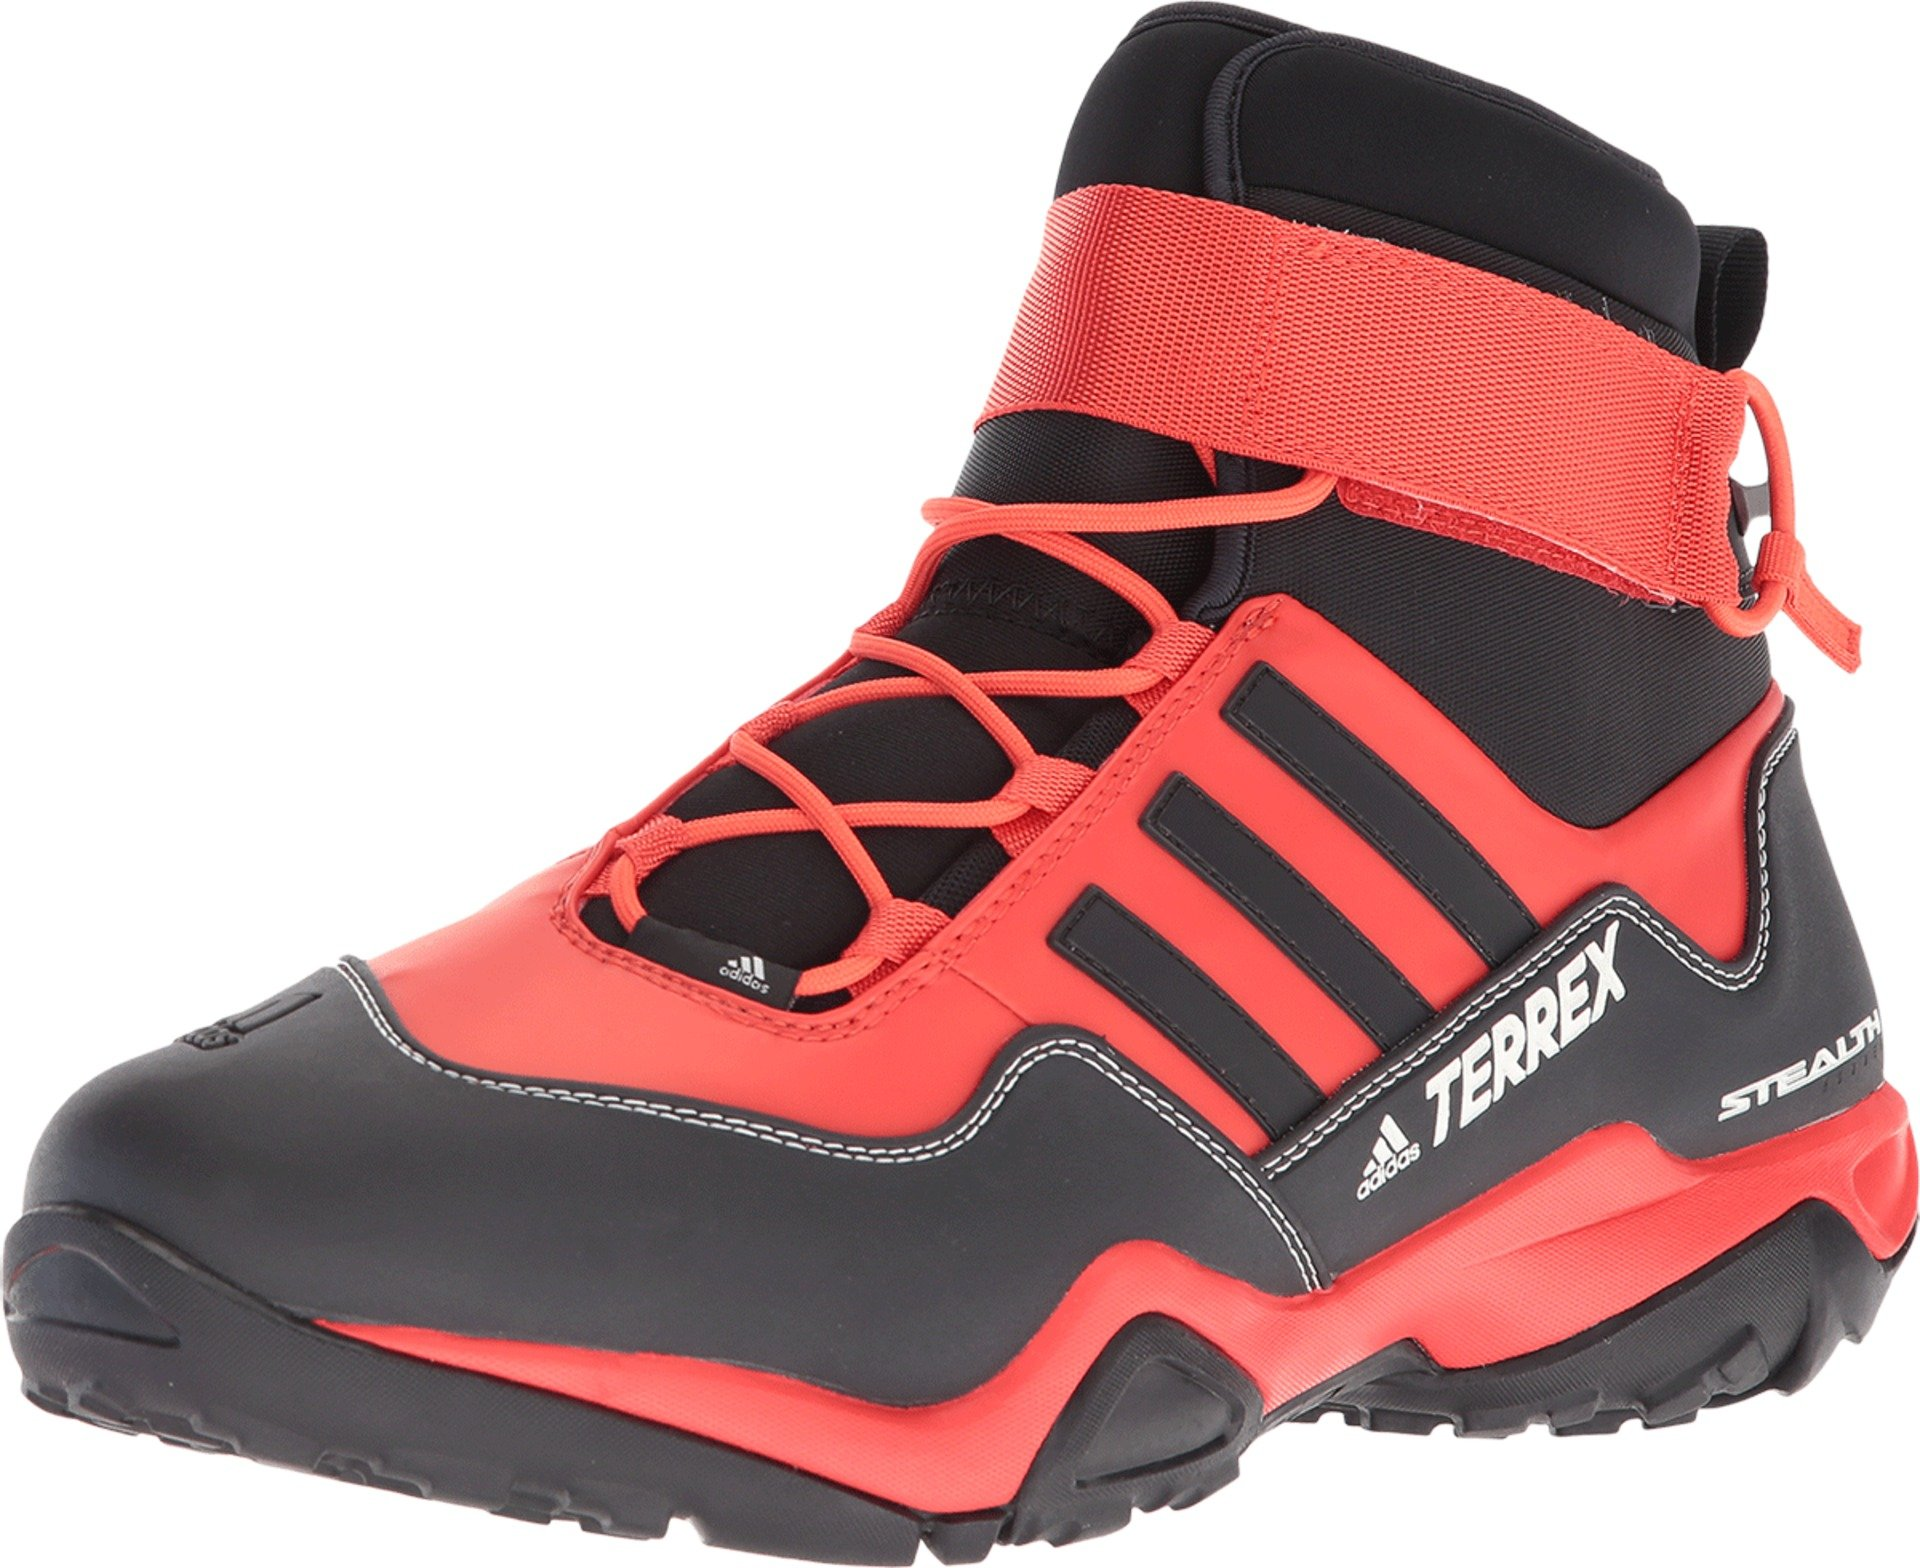 adidas outdoor Terrex Hydro_Lace Mens Water Shoes, (Hi-Res Red, Black, Chalk White), Size 10 by adidas outdoor